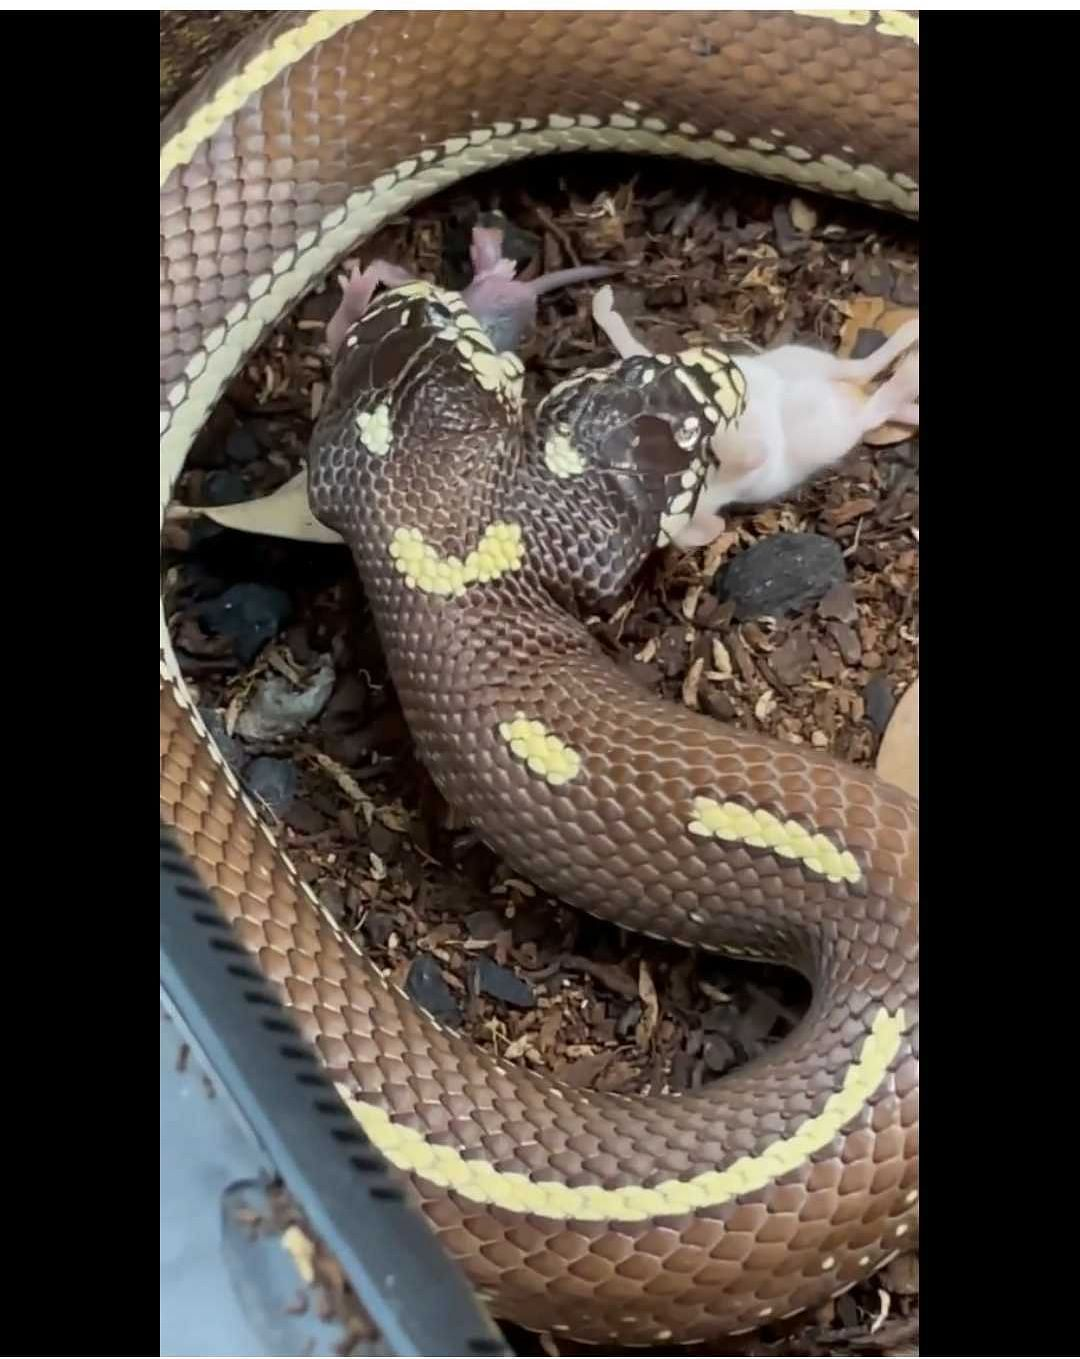 Watch Video: Two-headed snake eats two mice simultaneously